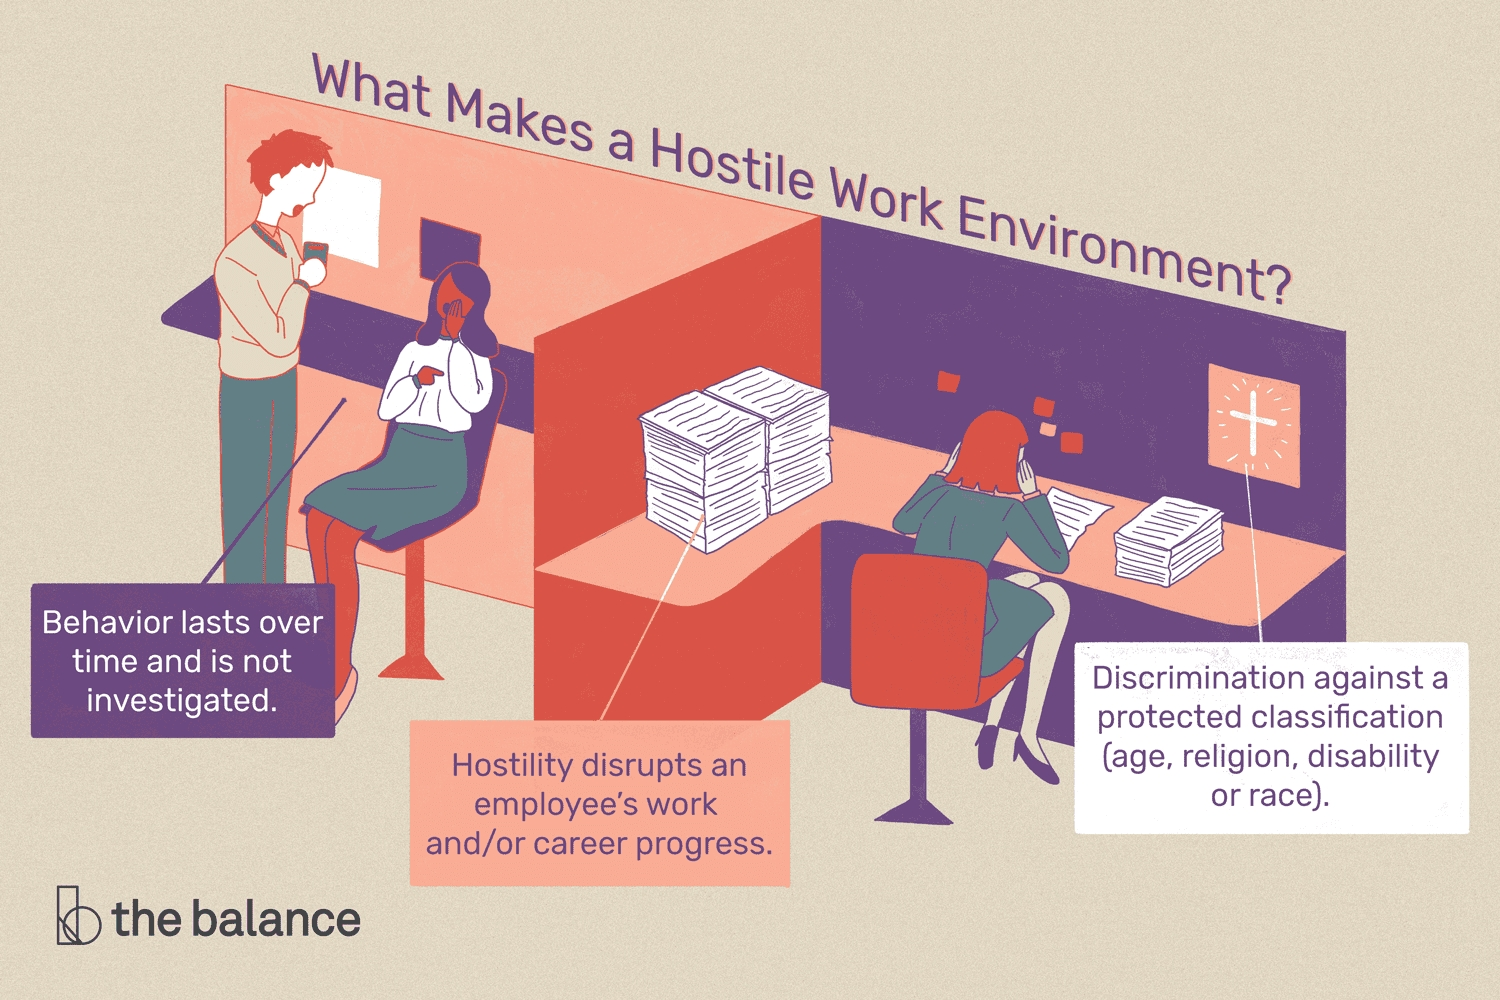 How To Know If You Have A Hostile Work Environment regarding Hostile Work Environment Examples 58041